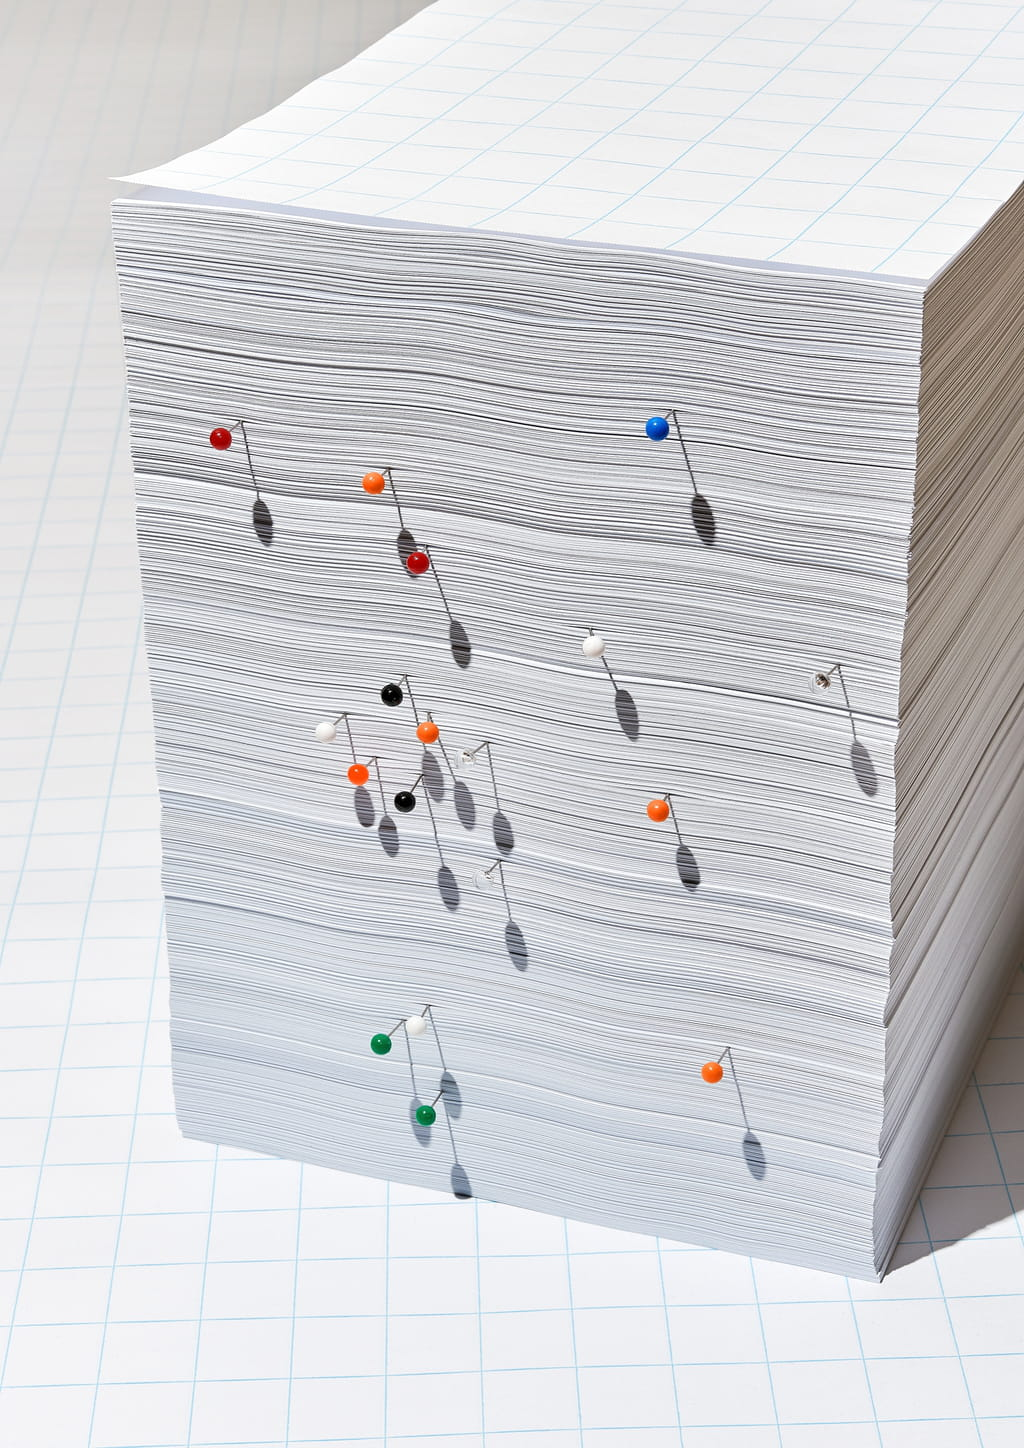 Photograph of a stack of gridded white paper with colourful needles inserted in it.